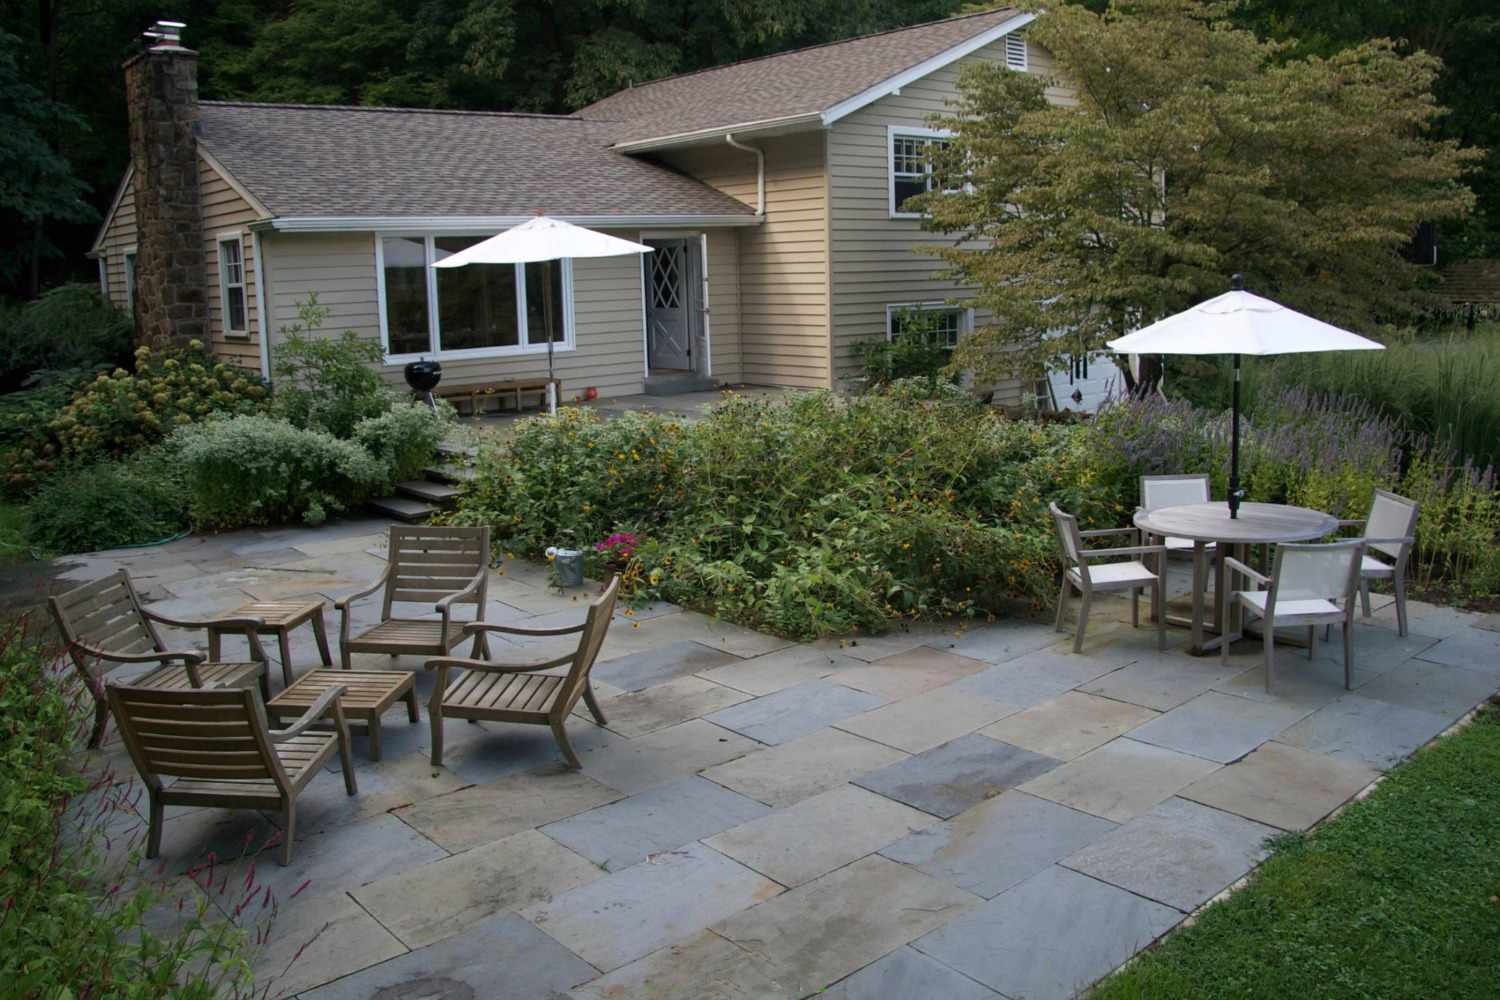 25 Great Patio Paver Design Ideas within 11 Some of the Coolest Initiatives of How to Craft Backyard Ideas With Pavers